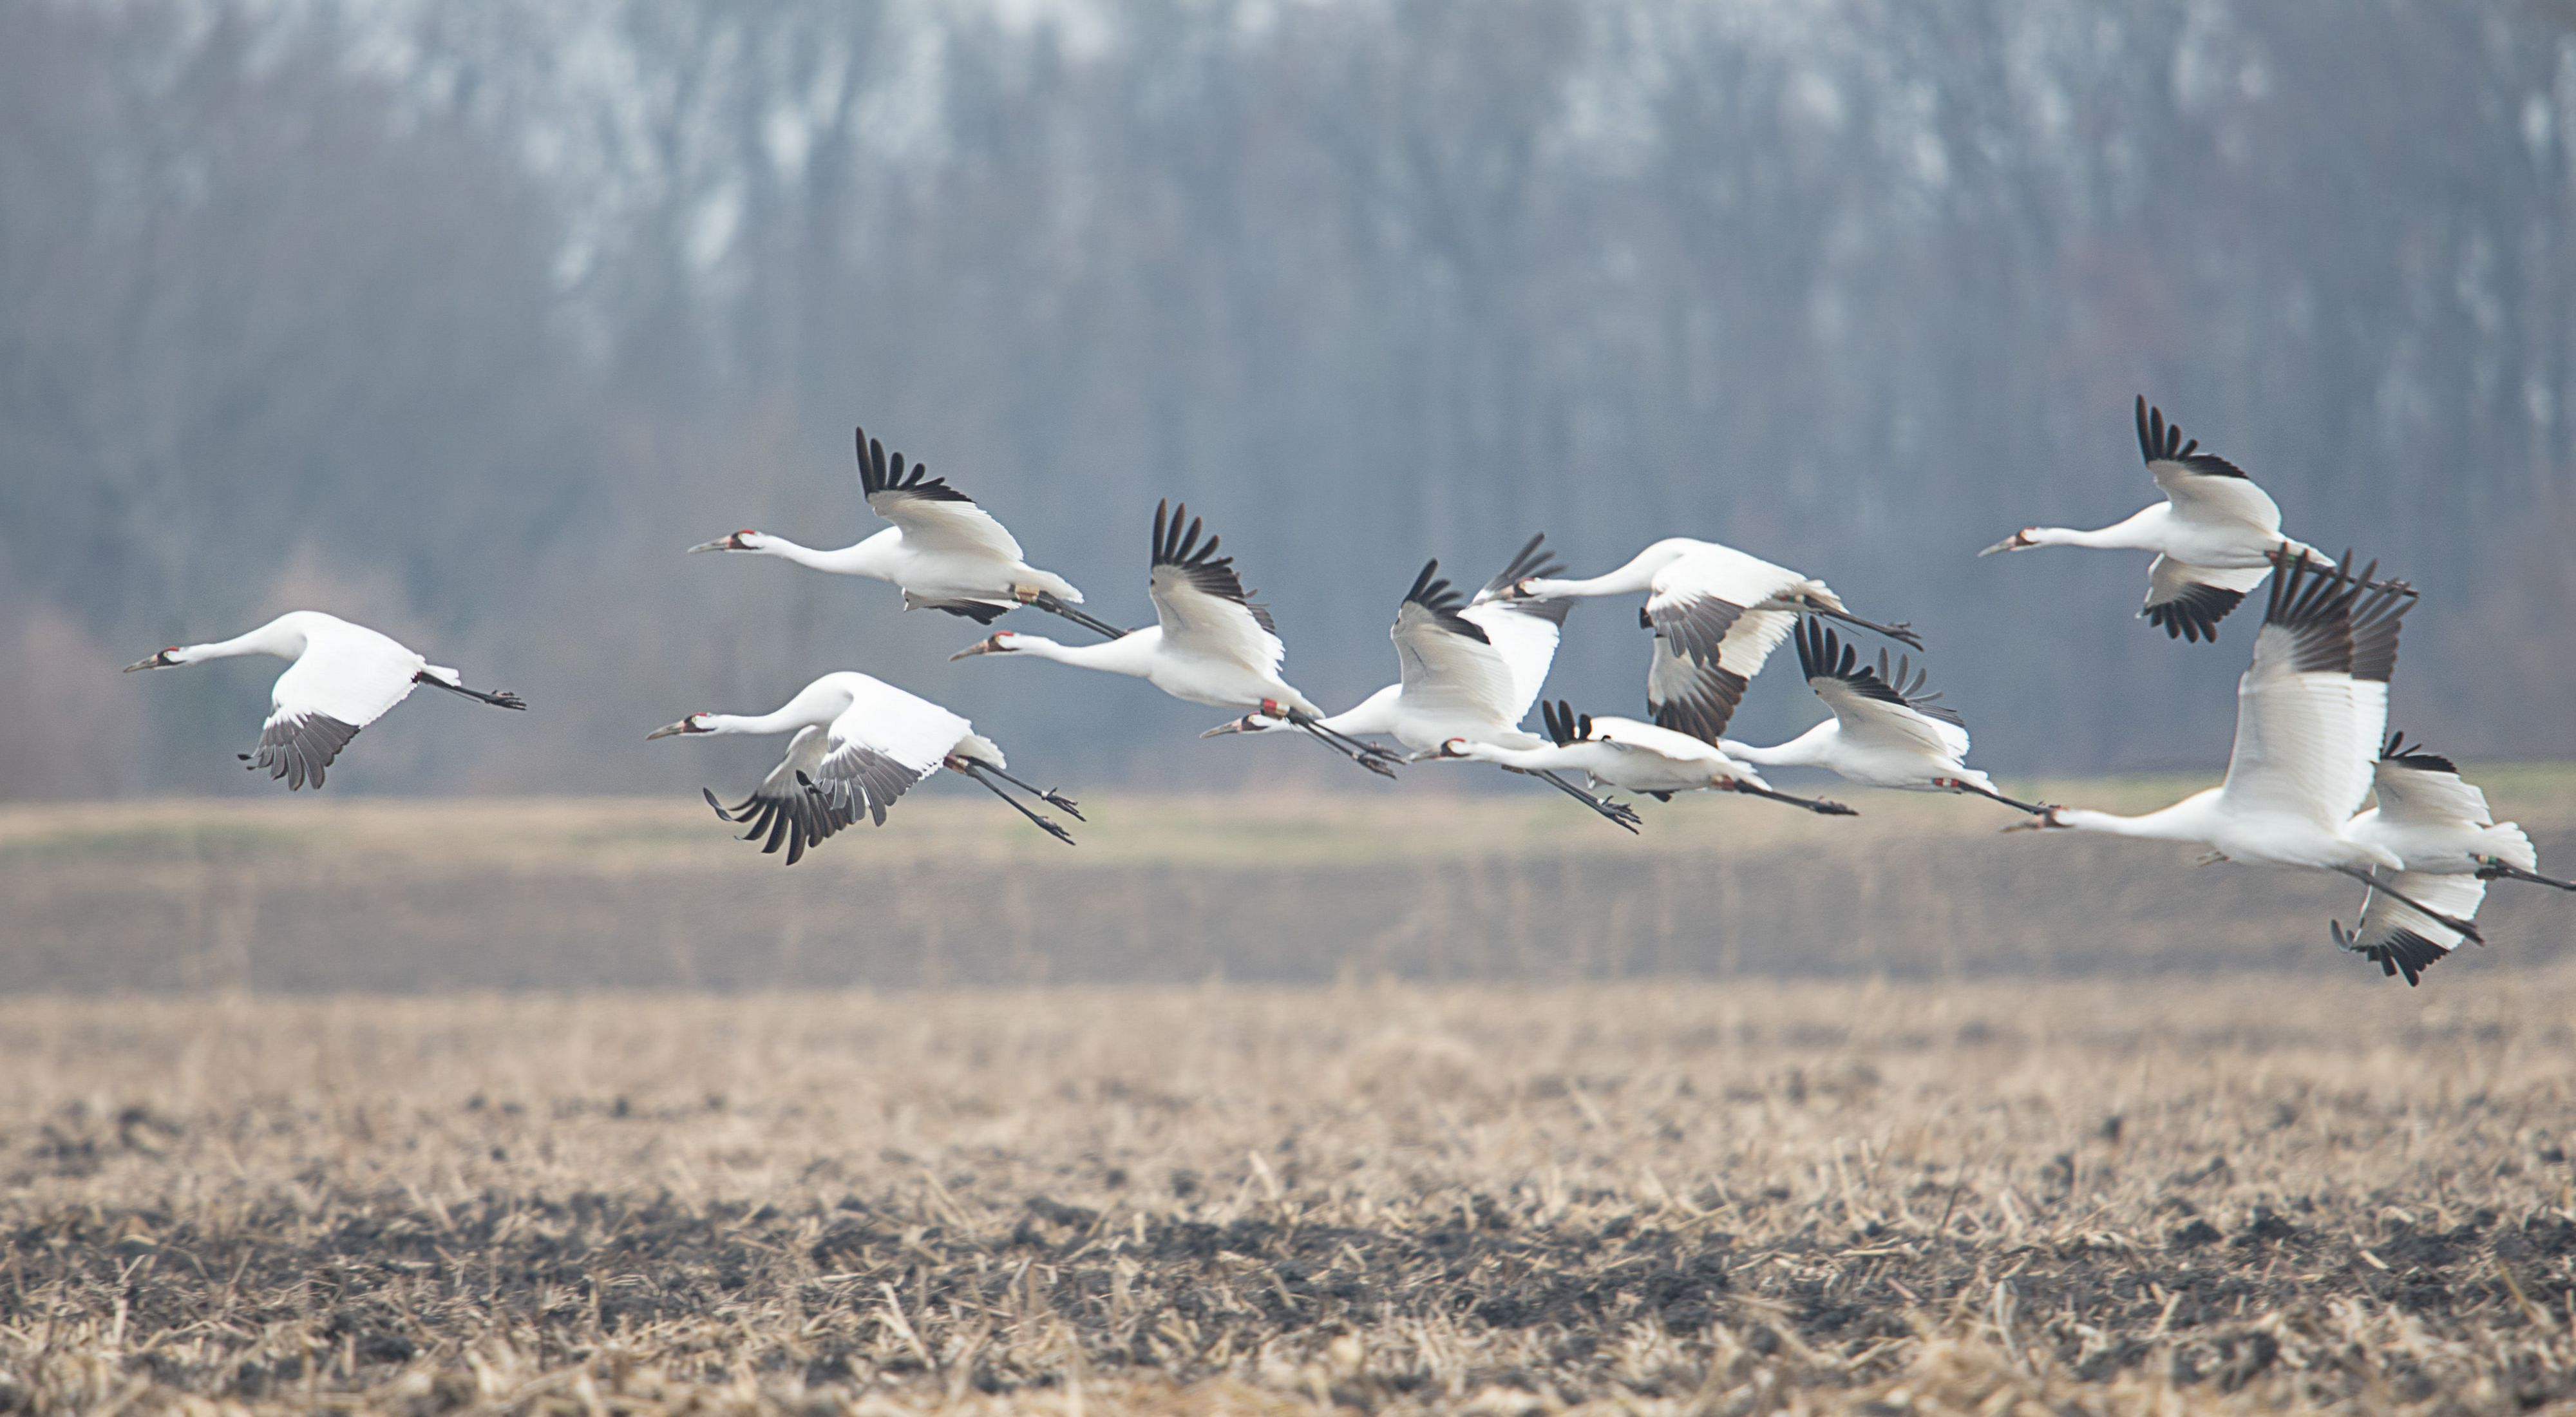 Photo of whooping cranes in flight over a field.